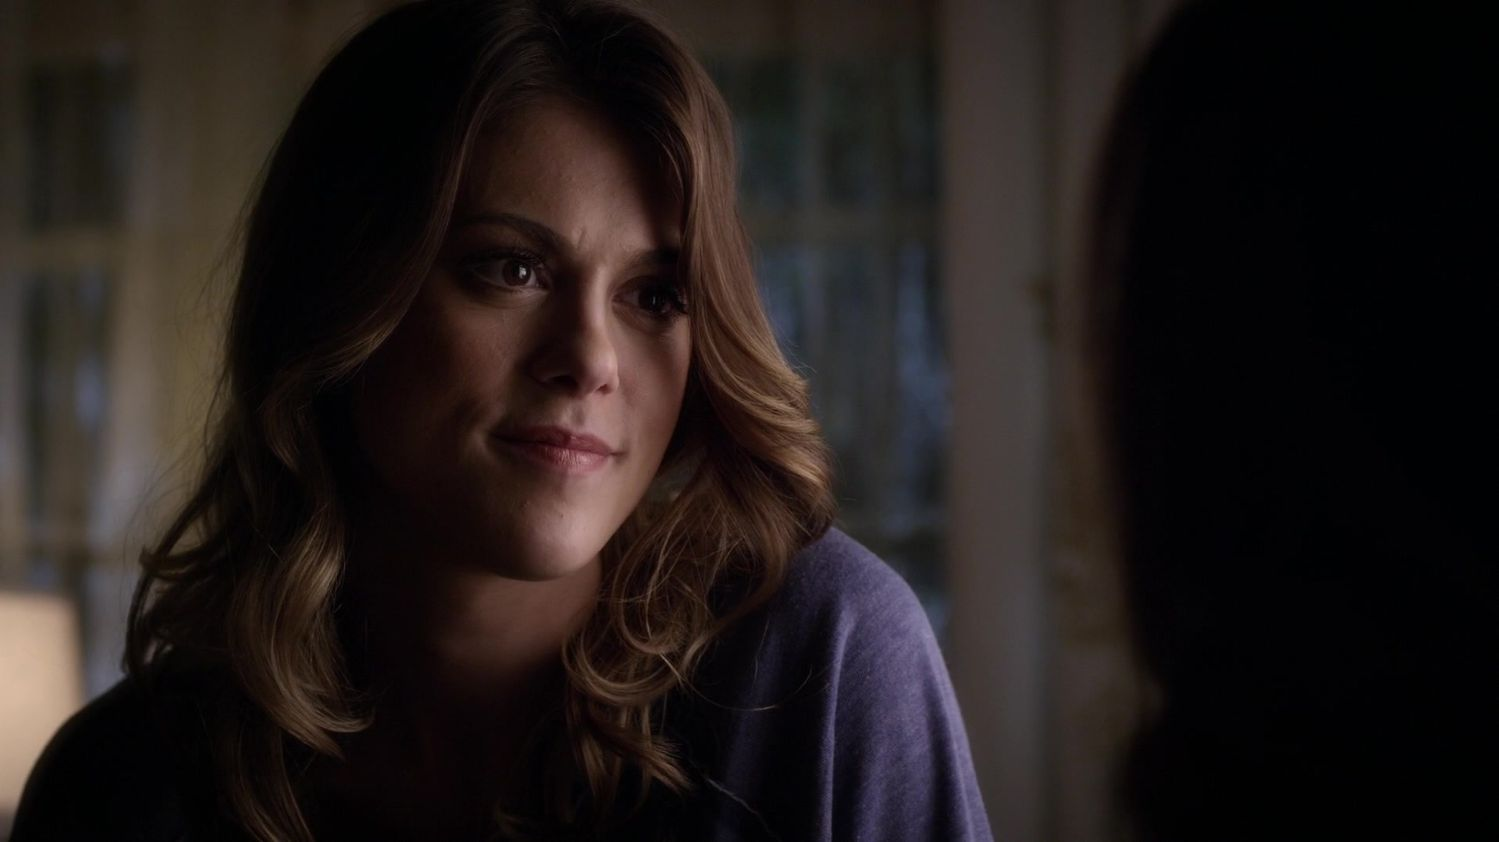 Paige McCullers | Pretty Little Liars Wikia | FANDOM powered